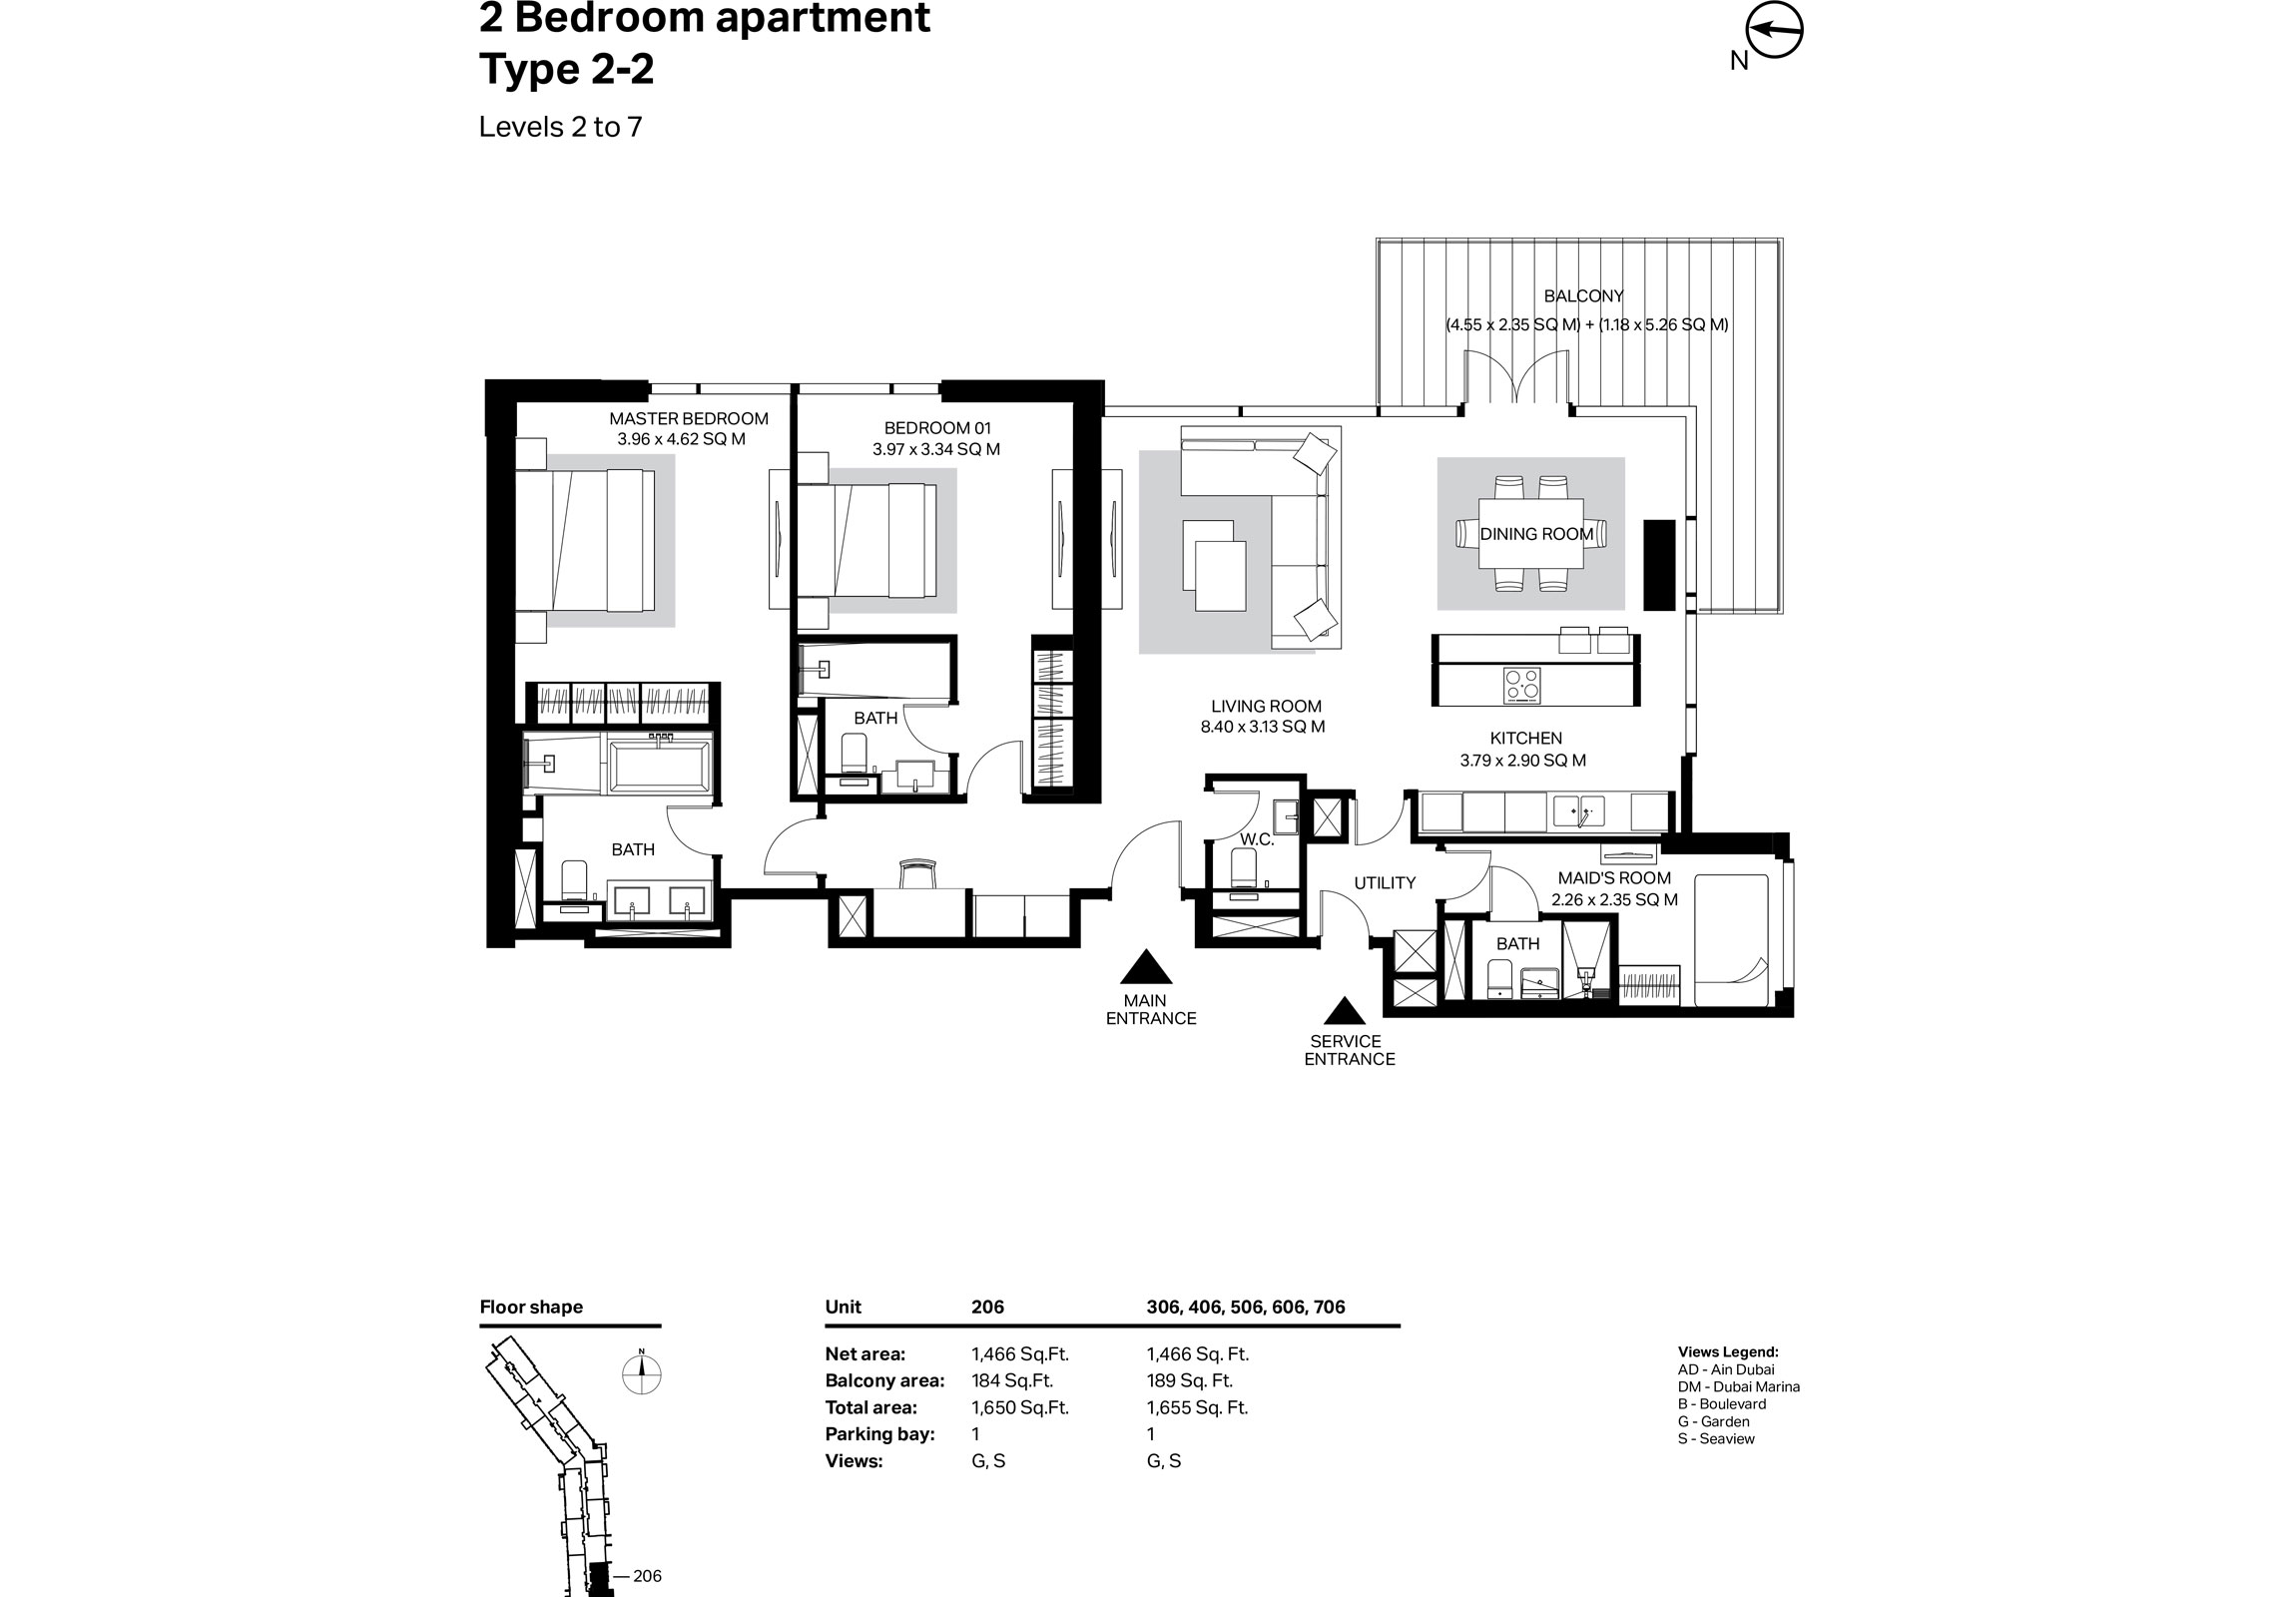 Building 2 - 2 Bedroom Type 2-2 Level 2 To 7 Size 1655    sq. ft.